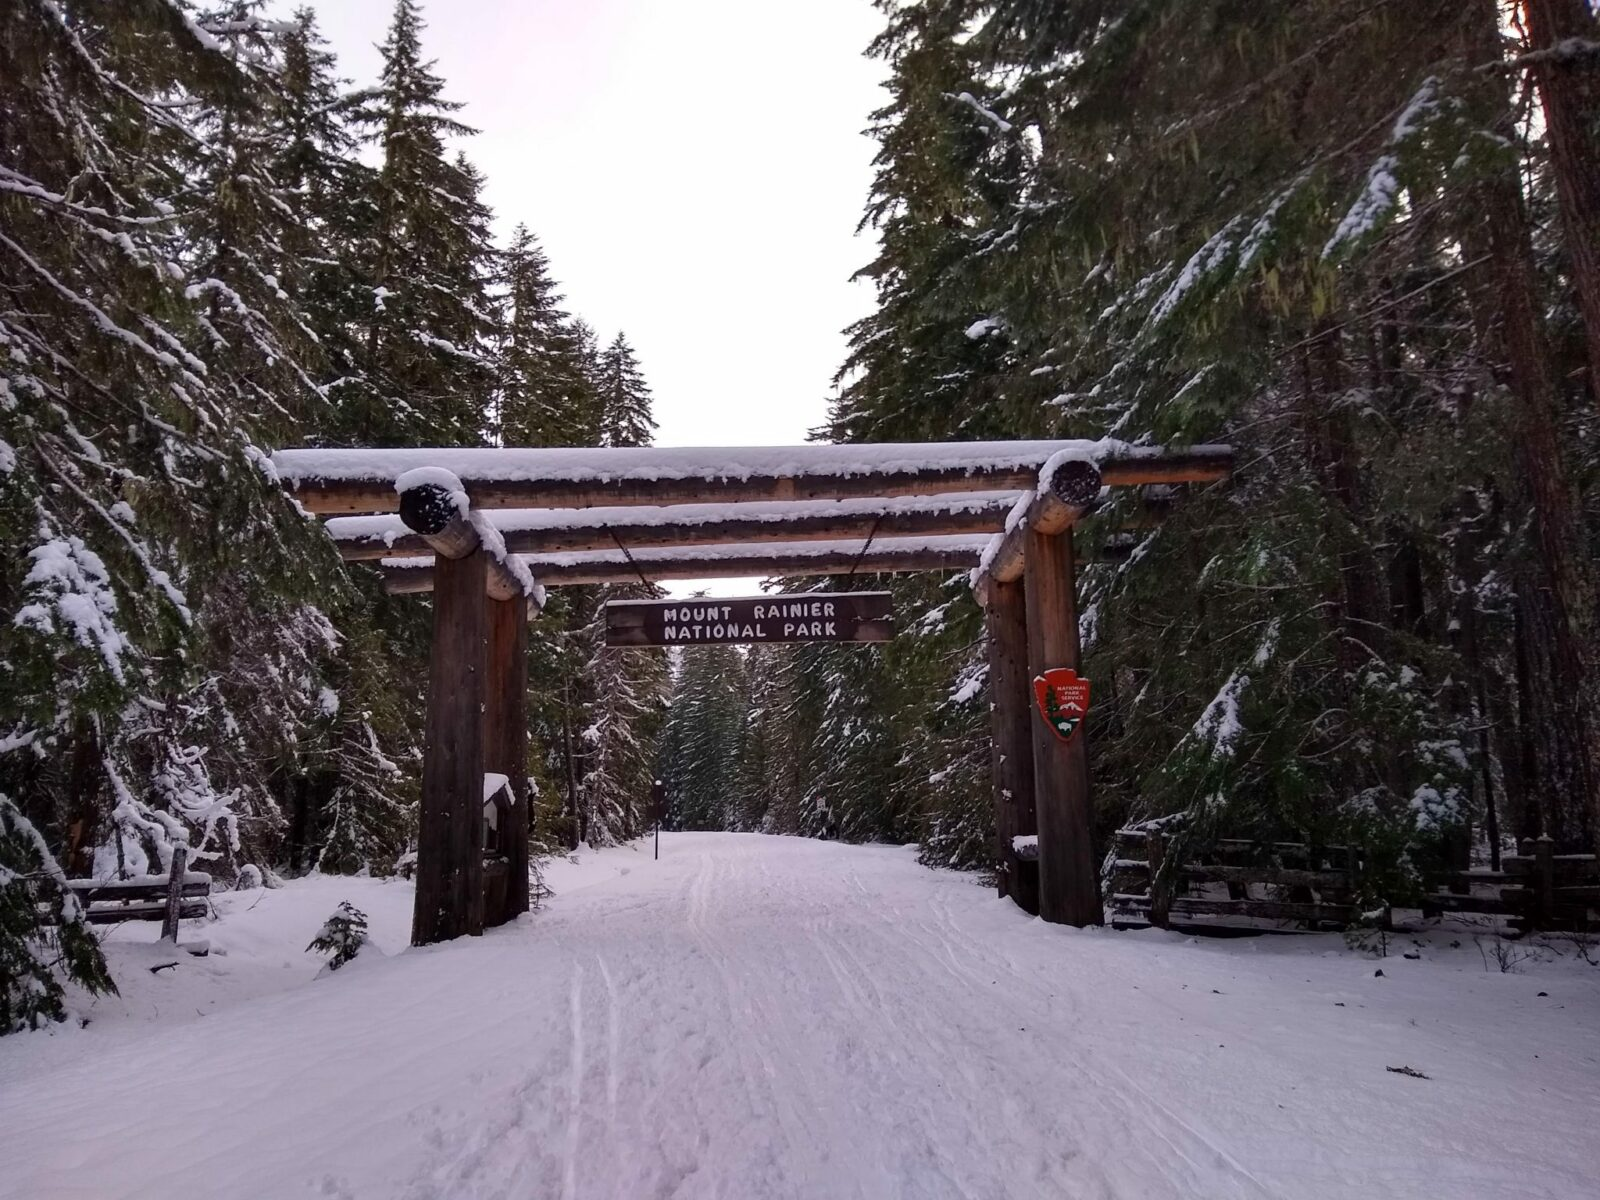 A road covered in snow surrounded by evergreen trees that are also snow covered. A wooden sign over the road says Mount Rainier National Park